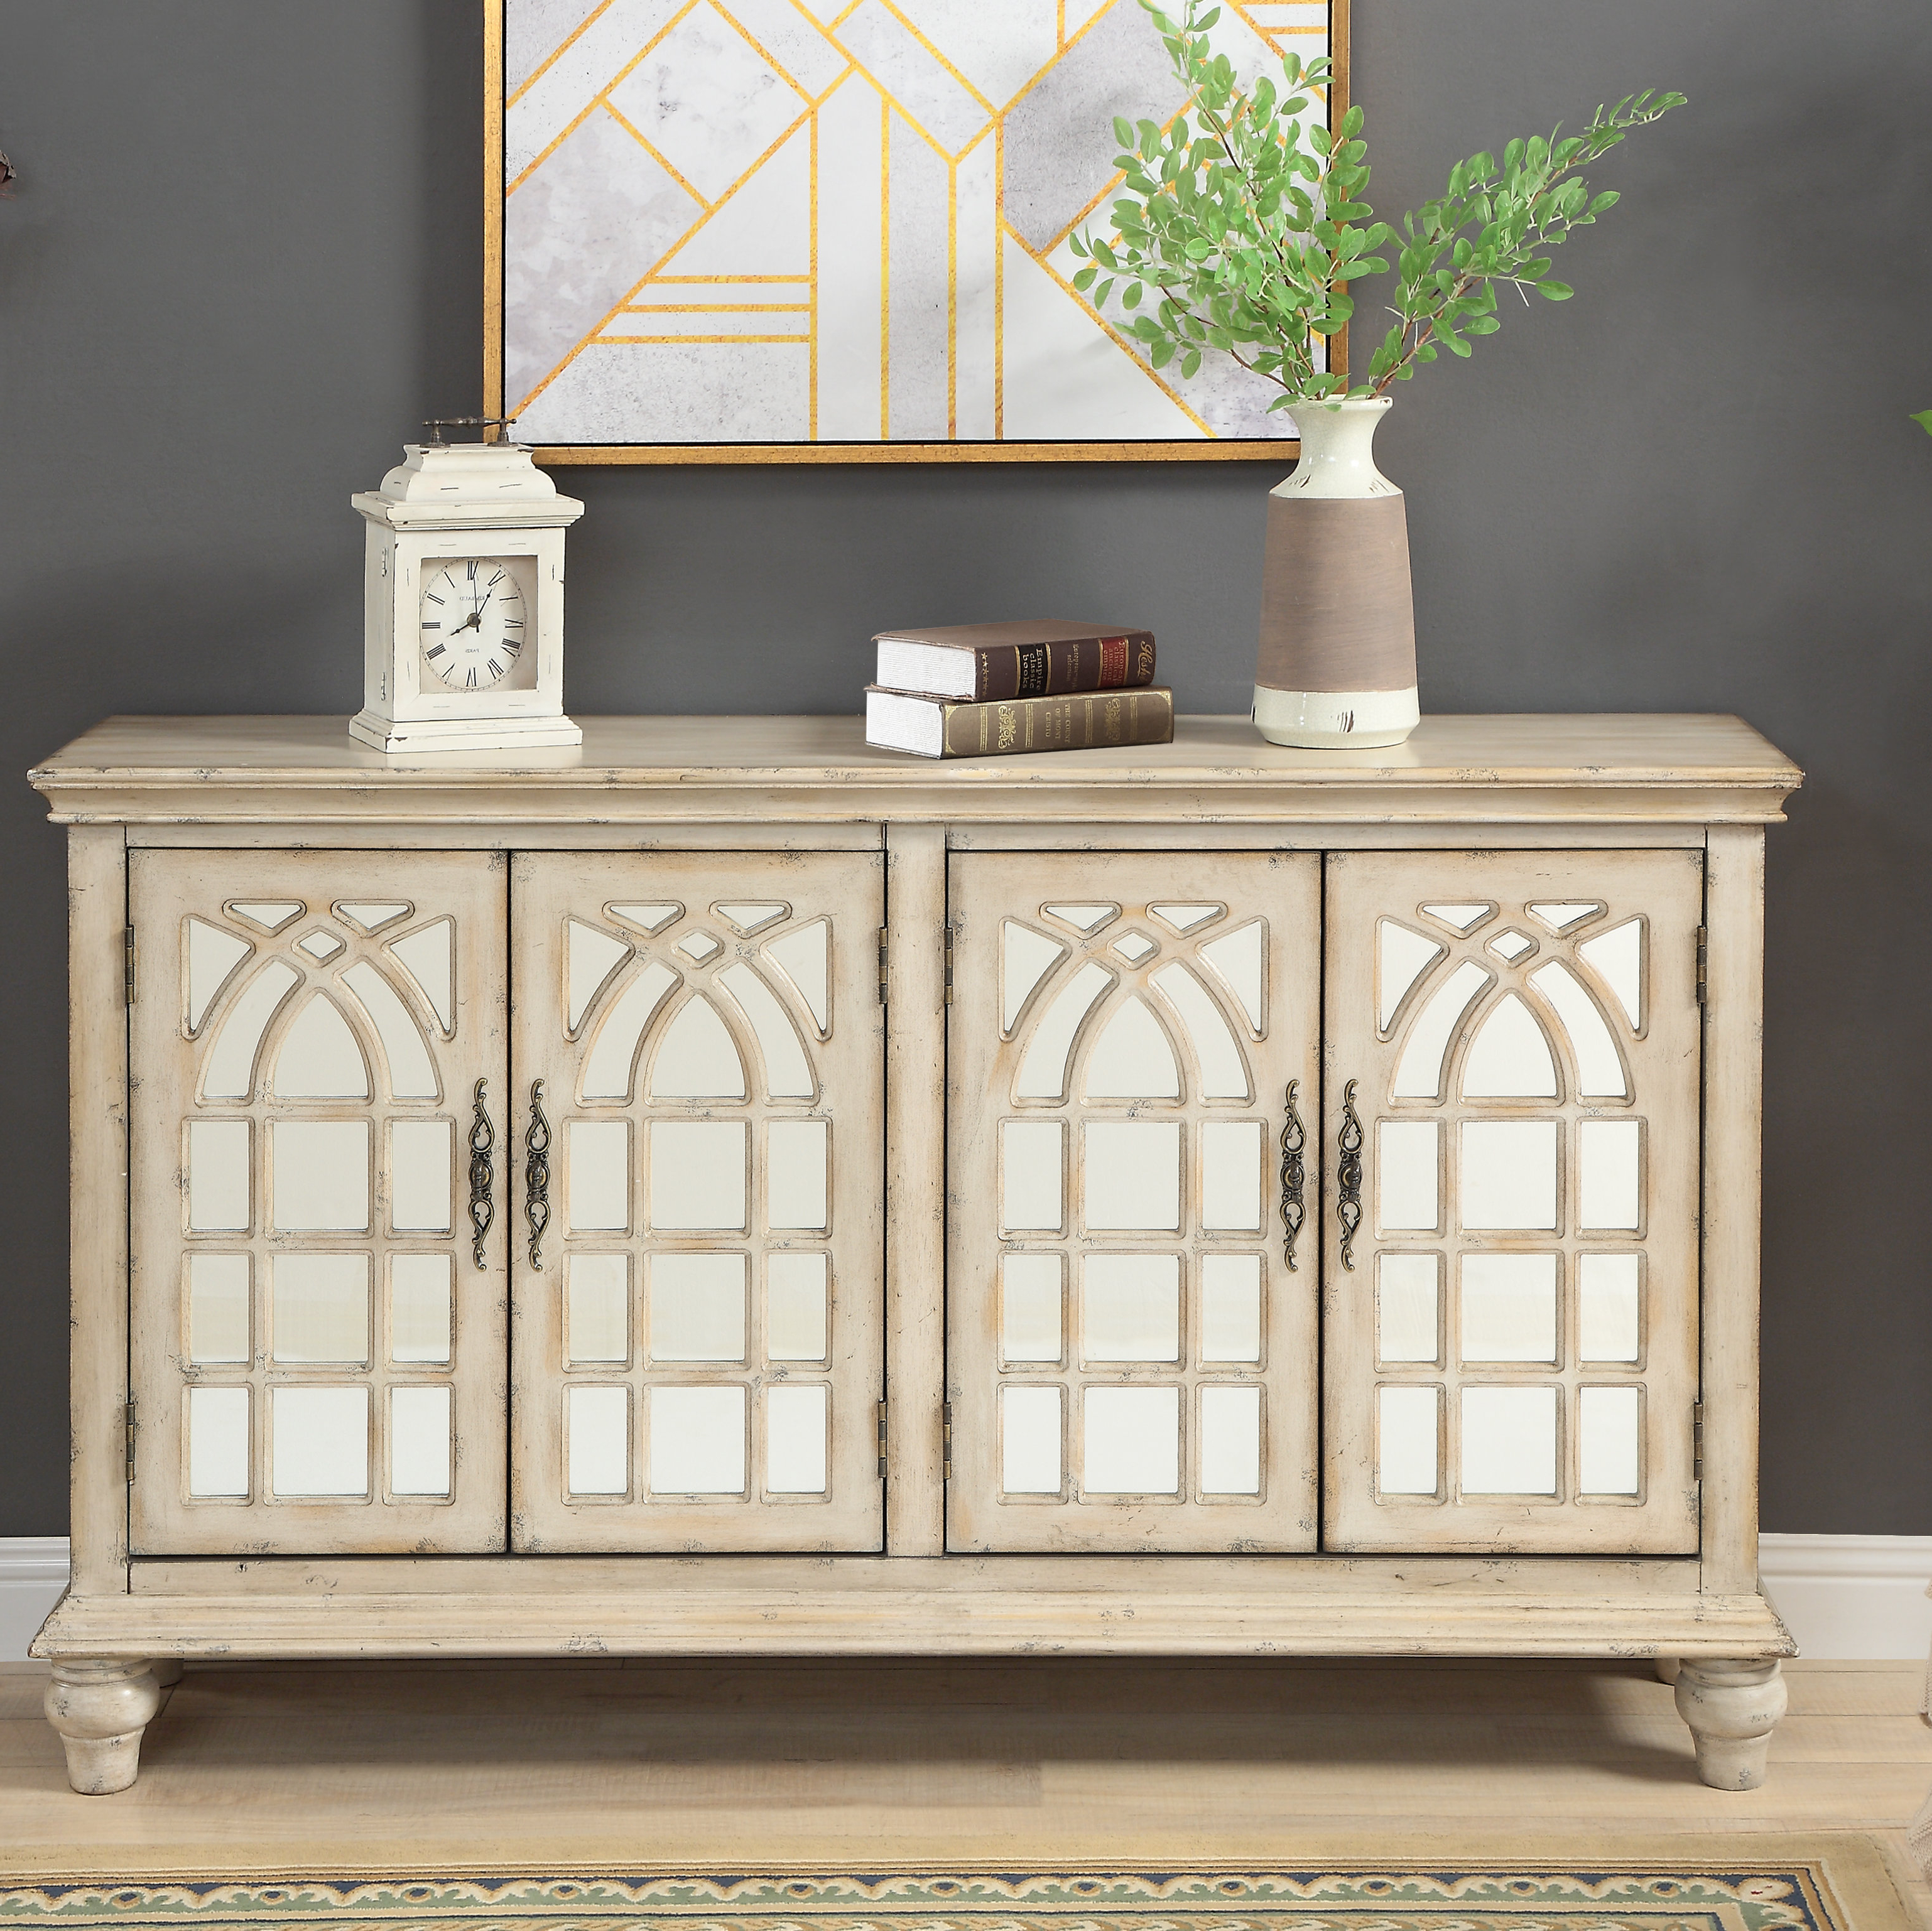 Favorite Farmhouse & Rustic One Allium Way Sideboards & Buffets Within Fugate 2 Door Credenzas (Gallery 6 of 20)